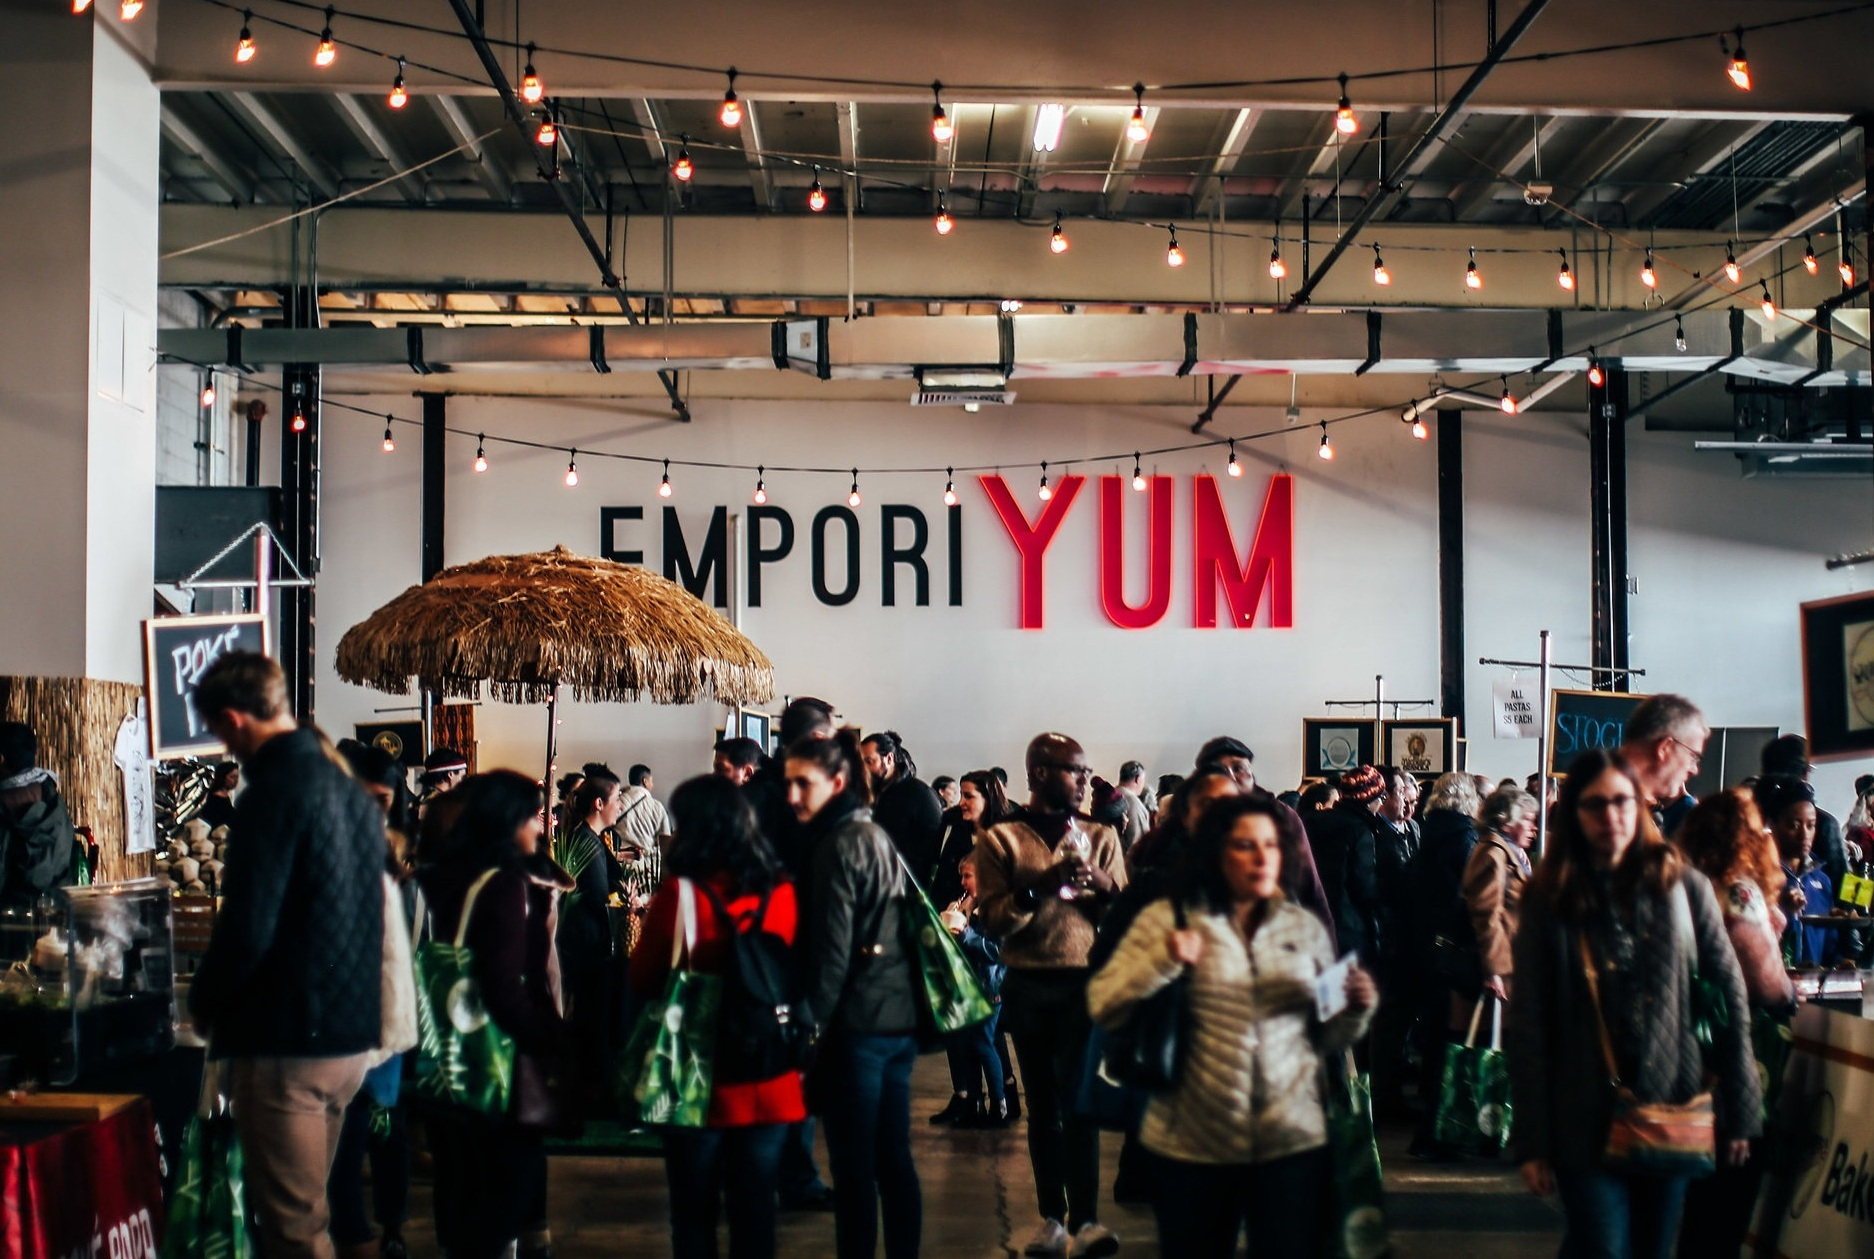 past yums - Since 2014 The Emporiyum has been bringing people together. Check out our past events!